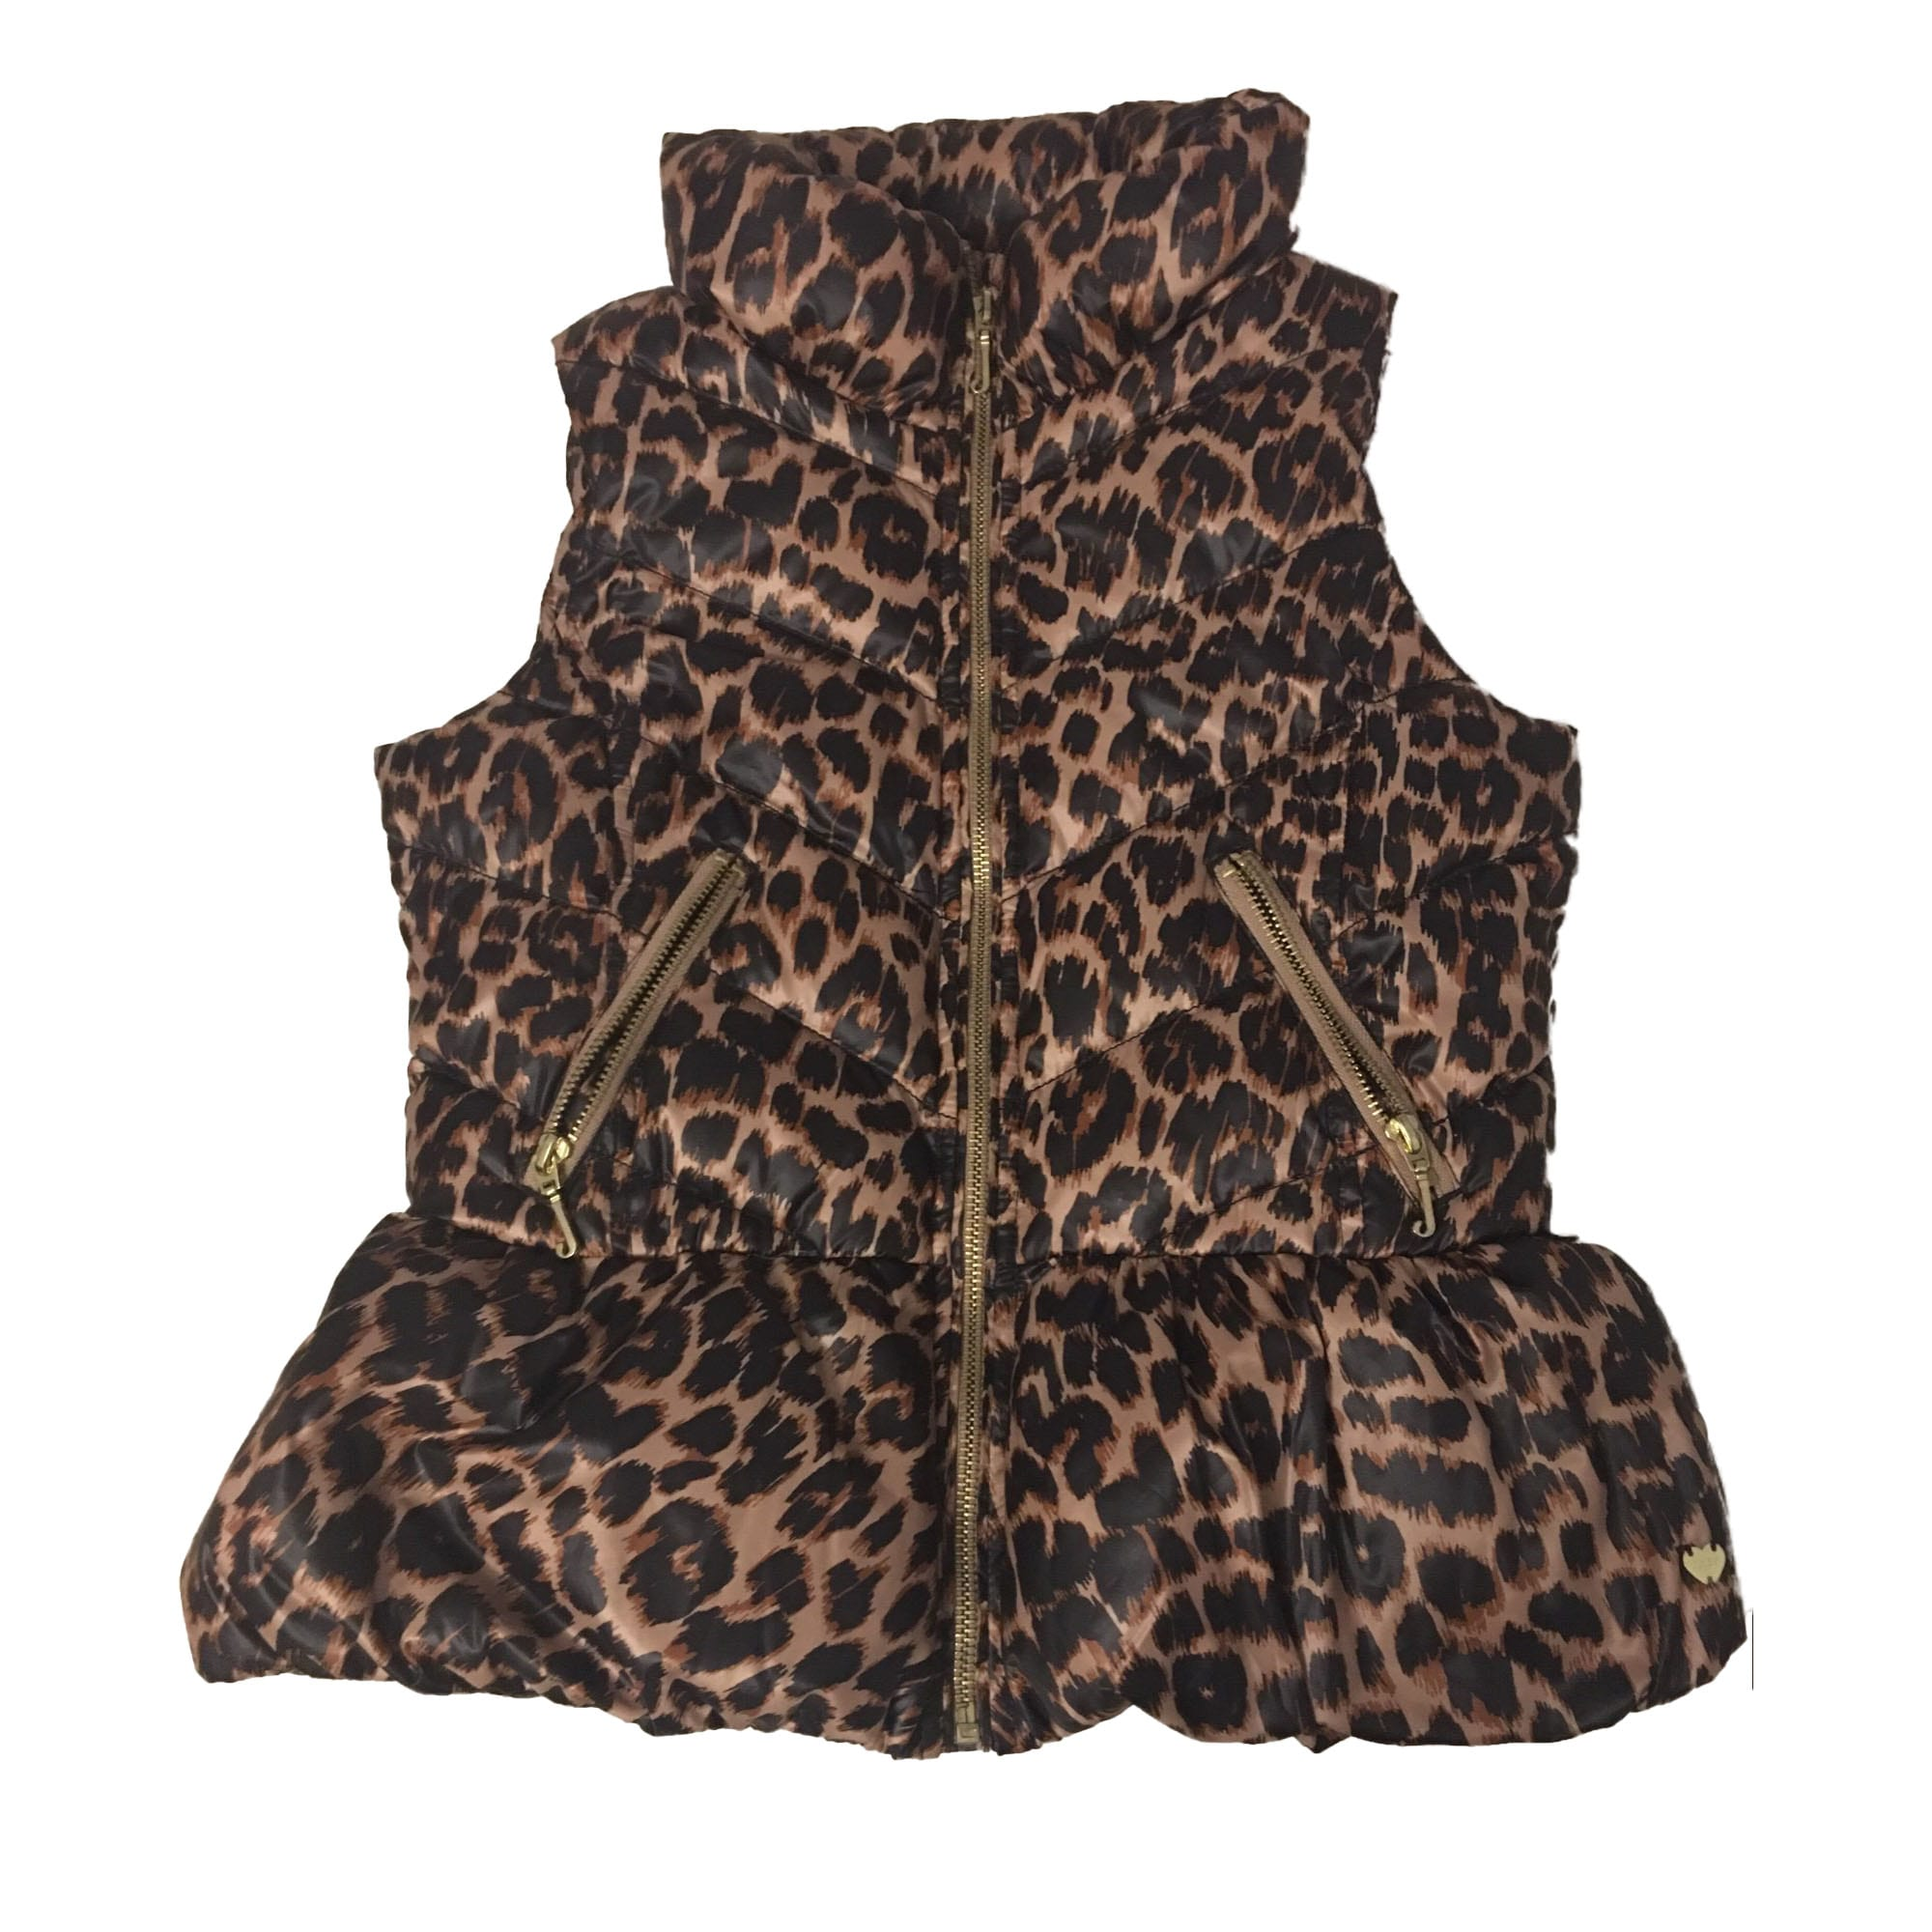 Down Jacket JUICY COUTURE Animal prints